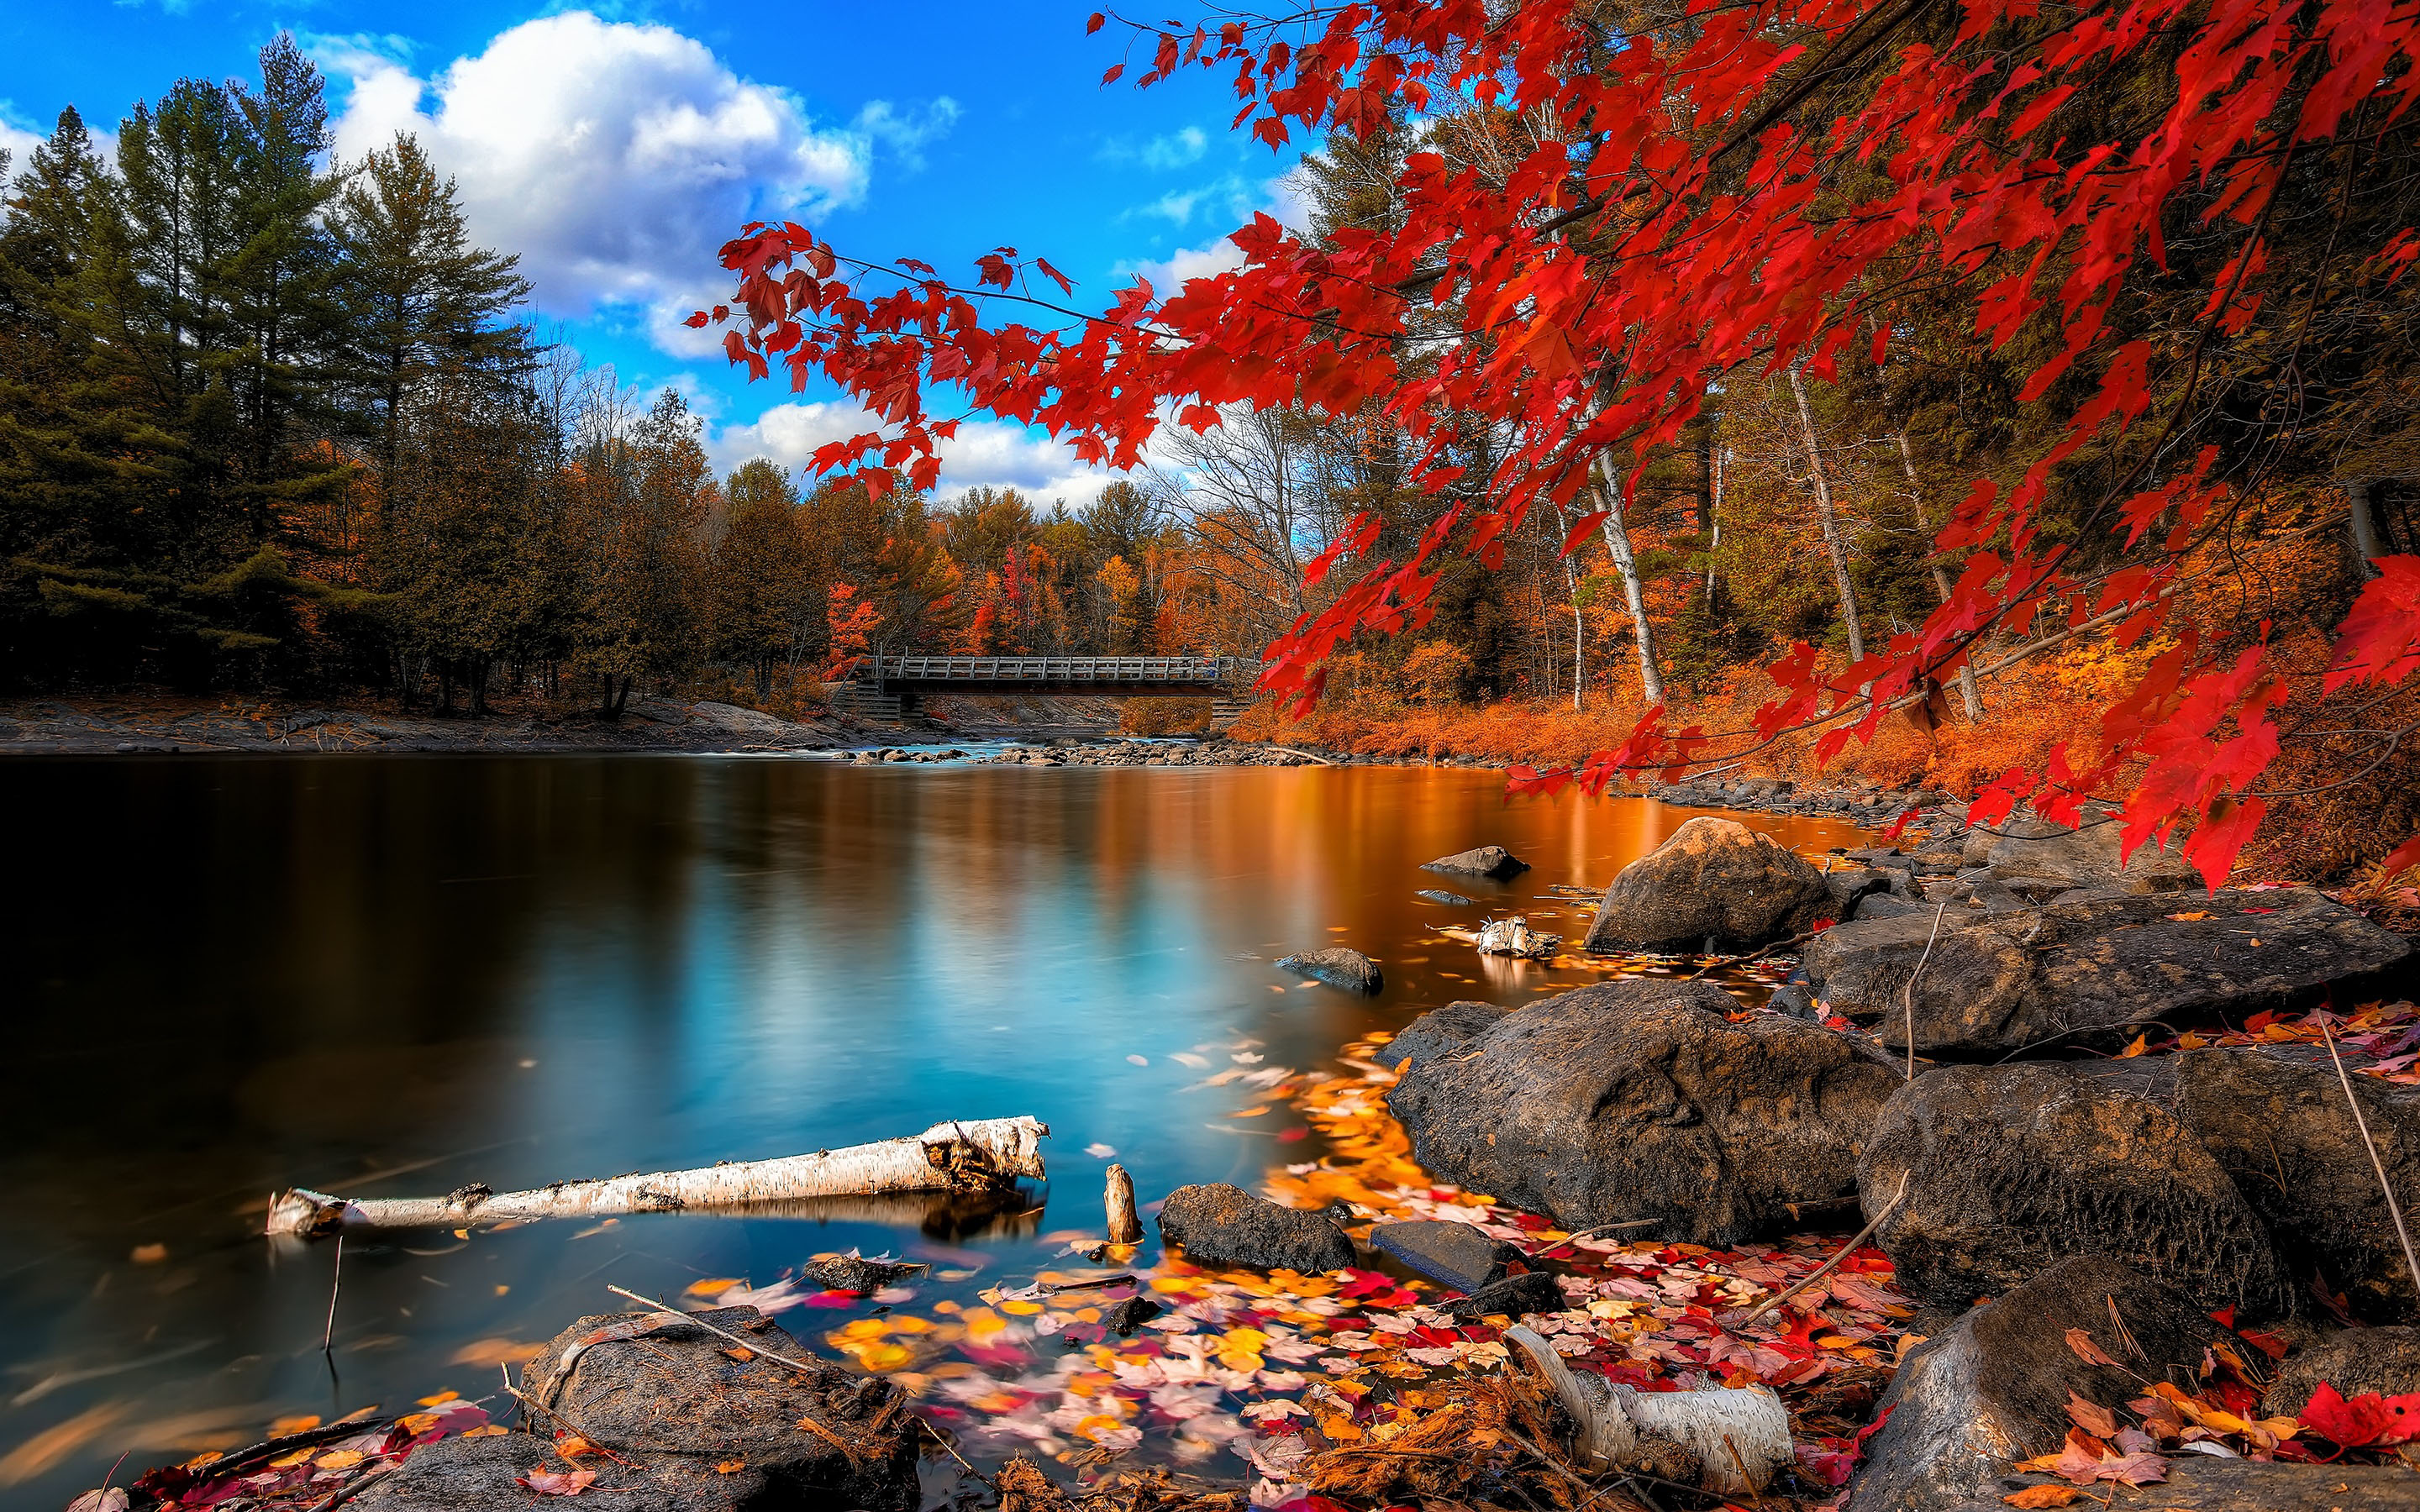 Macbook_Pr​o_Wallpape​r_with_Aut​umn_Forest​_and_River​_in_2880x1​800